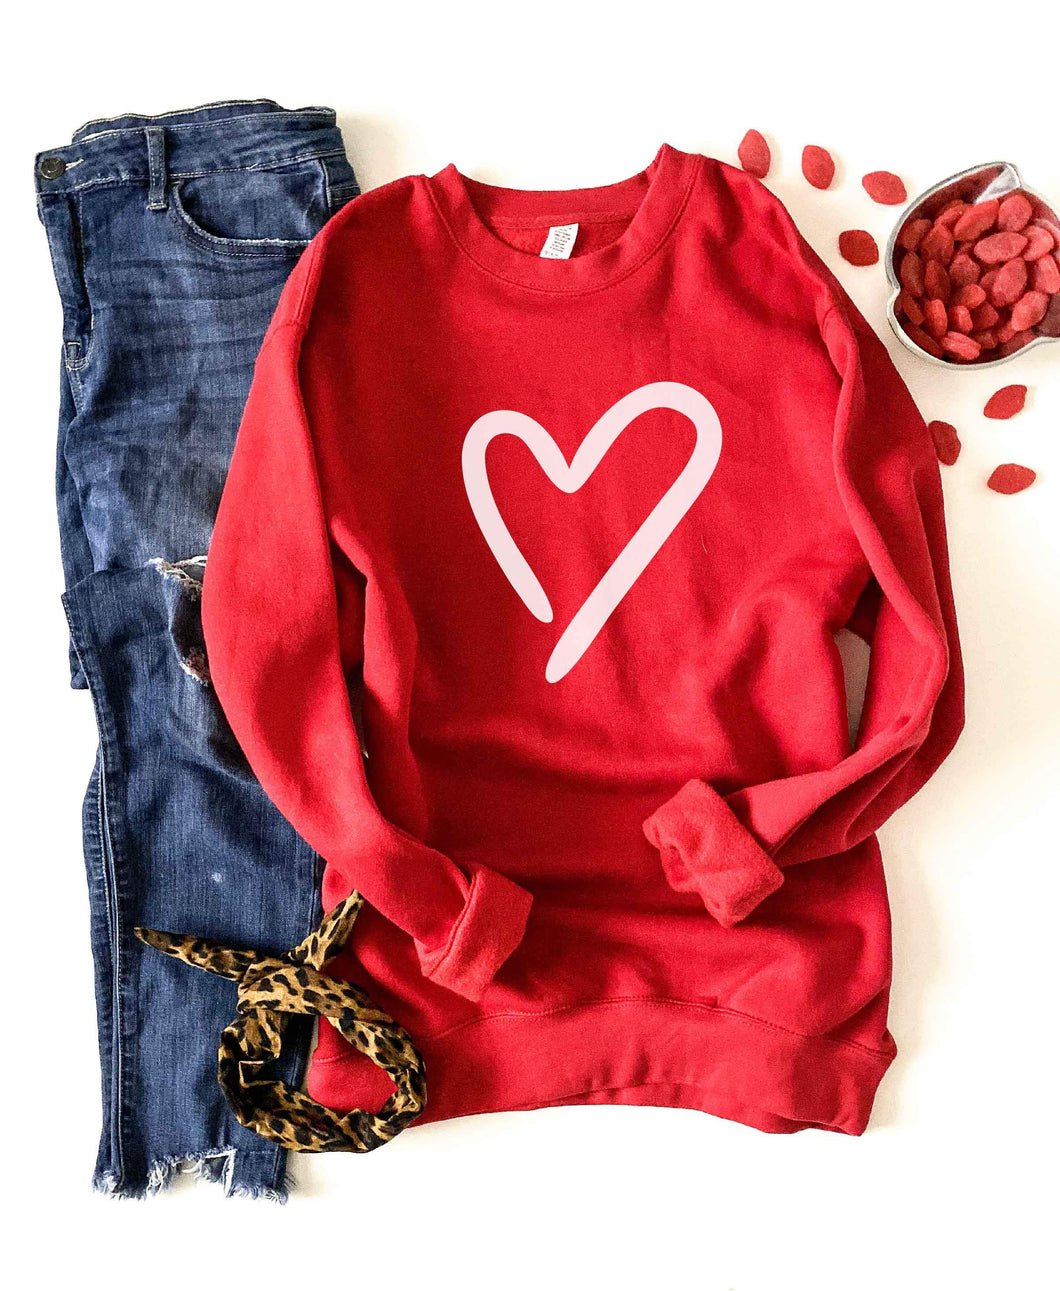 Heart fleece sweatshirt Valentines sweatshirt Independent Trading company lightweight hoodie